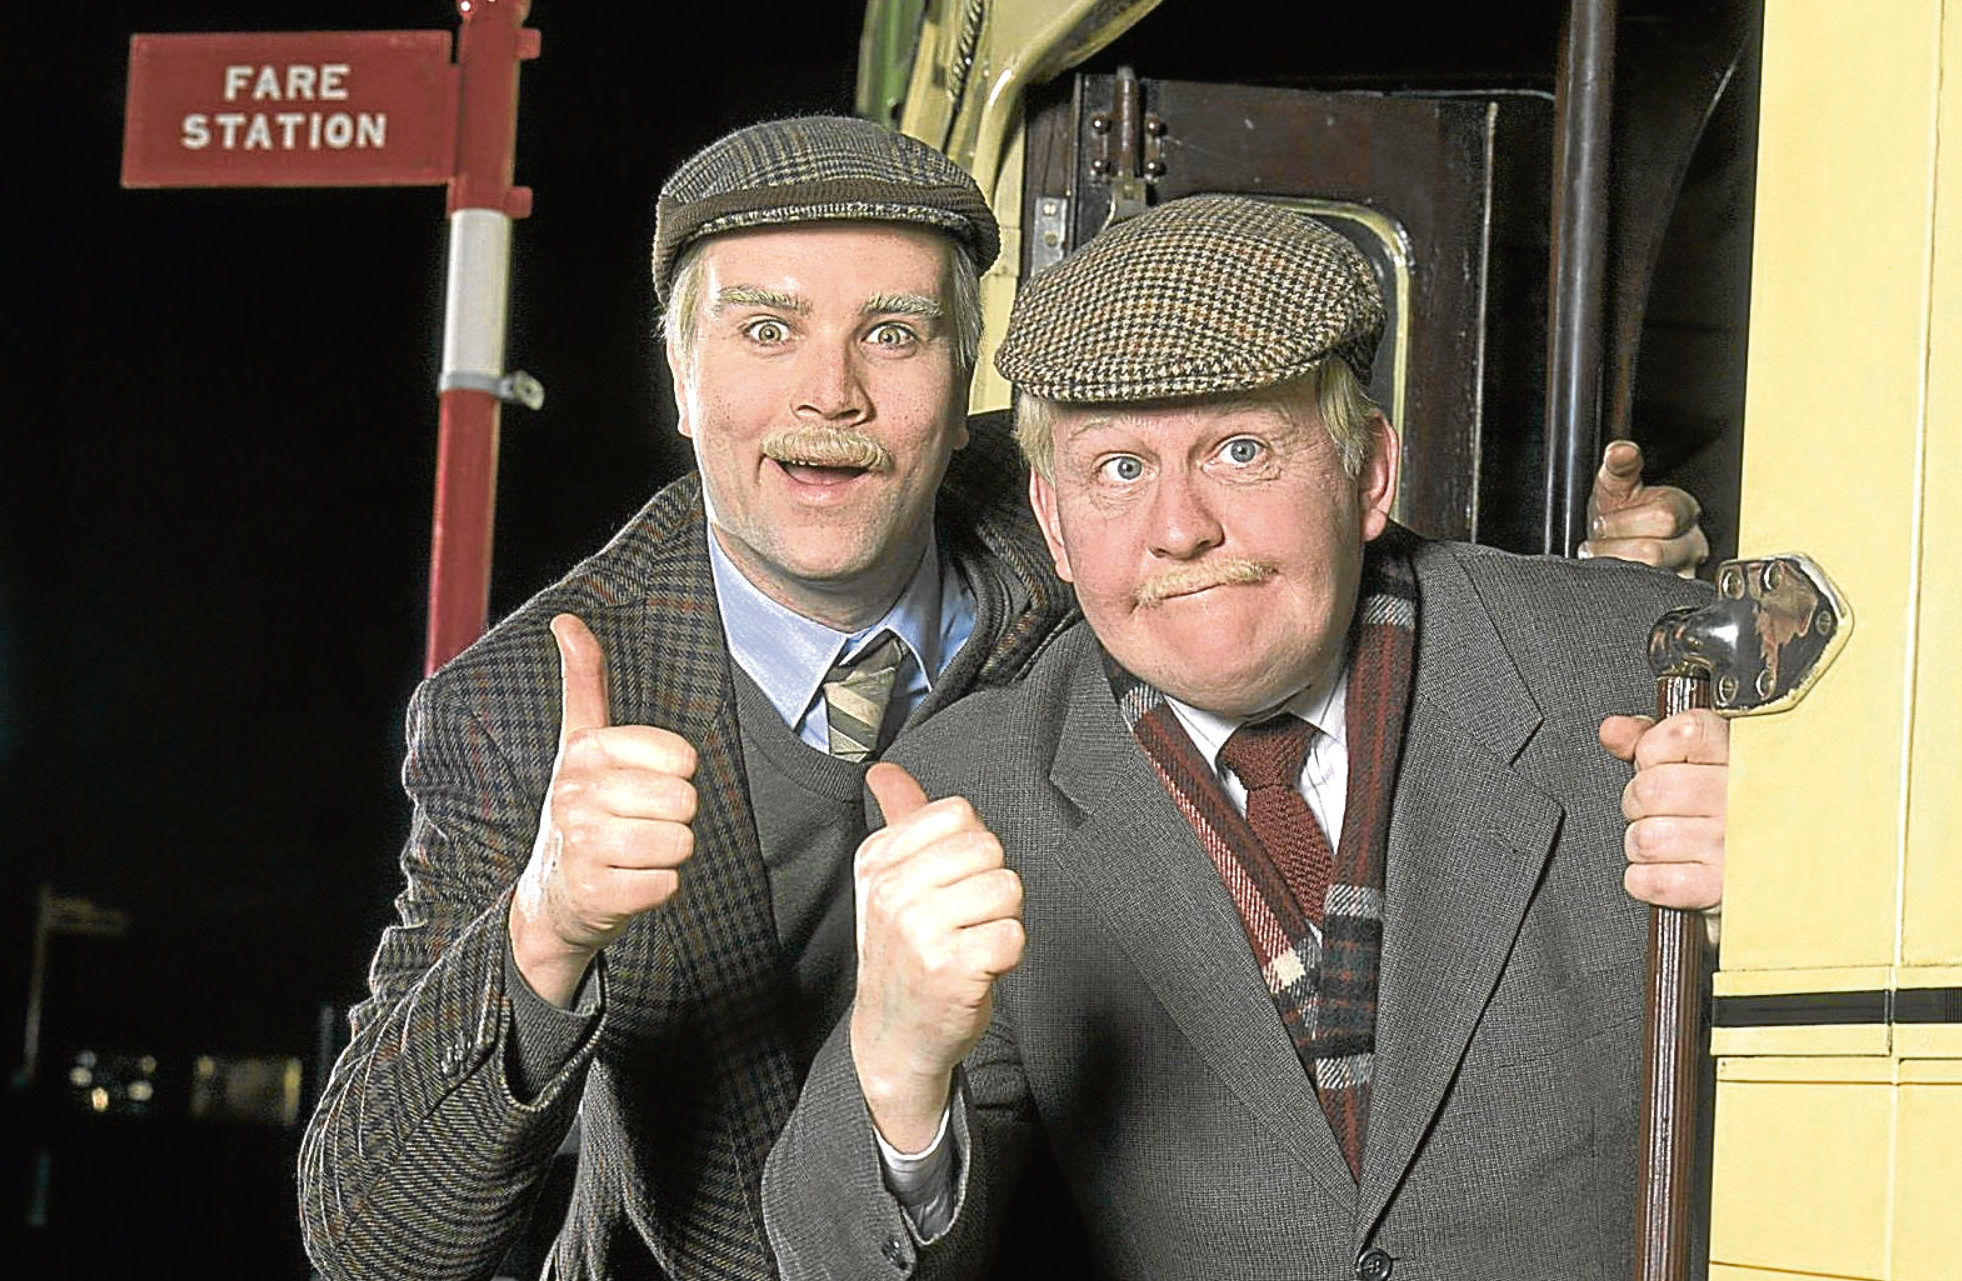 Ford Kiernan (right) alongside Greg Hemphill in Still Game (BBC)